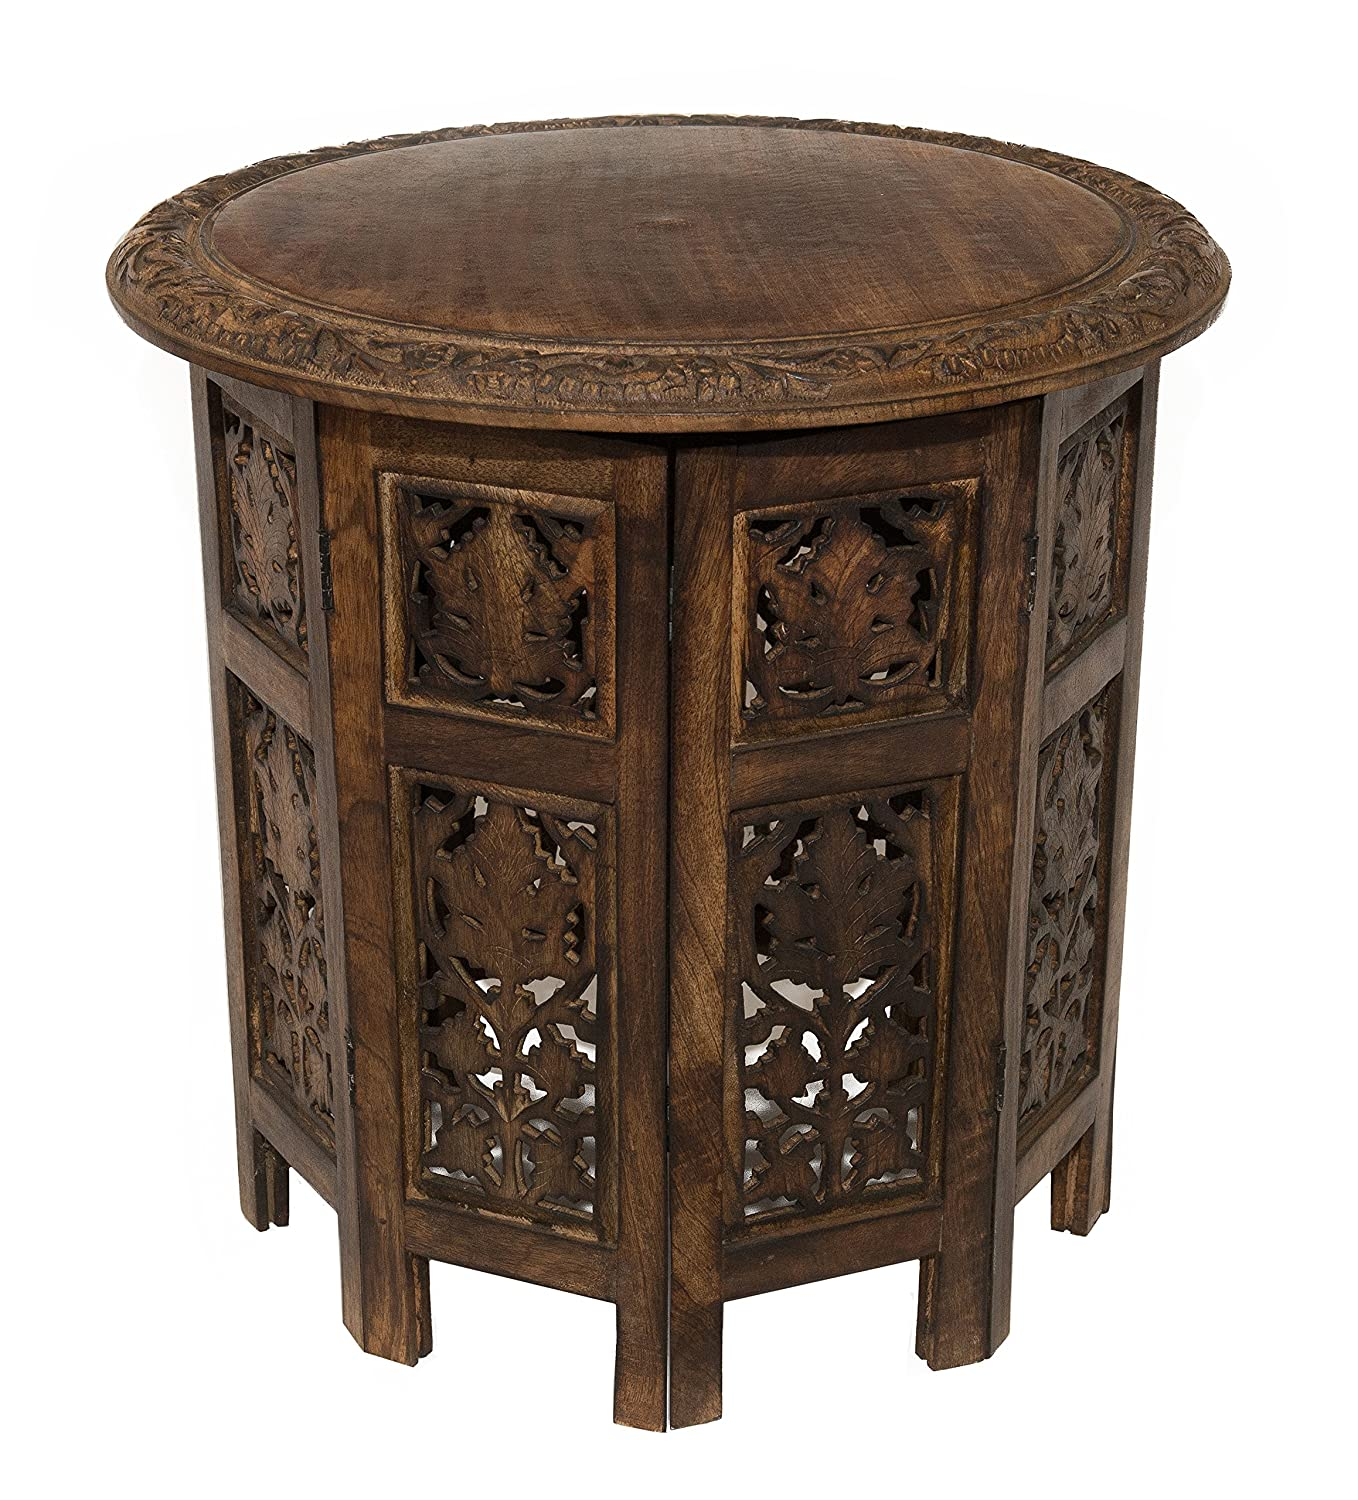 Amazon com  Cotton Craft Jaipur Solid Wood Hand Carved Accent Coffee Table    18 Inch Round Top x 18 Inch High   Antique Brown  Kitchen   Dining. Amazon com  Cotton Craft Jaipur Solid Wood Hand Carved Accent